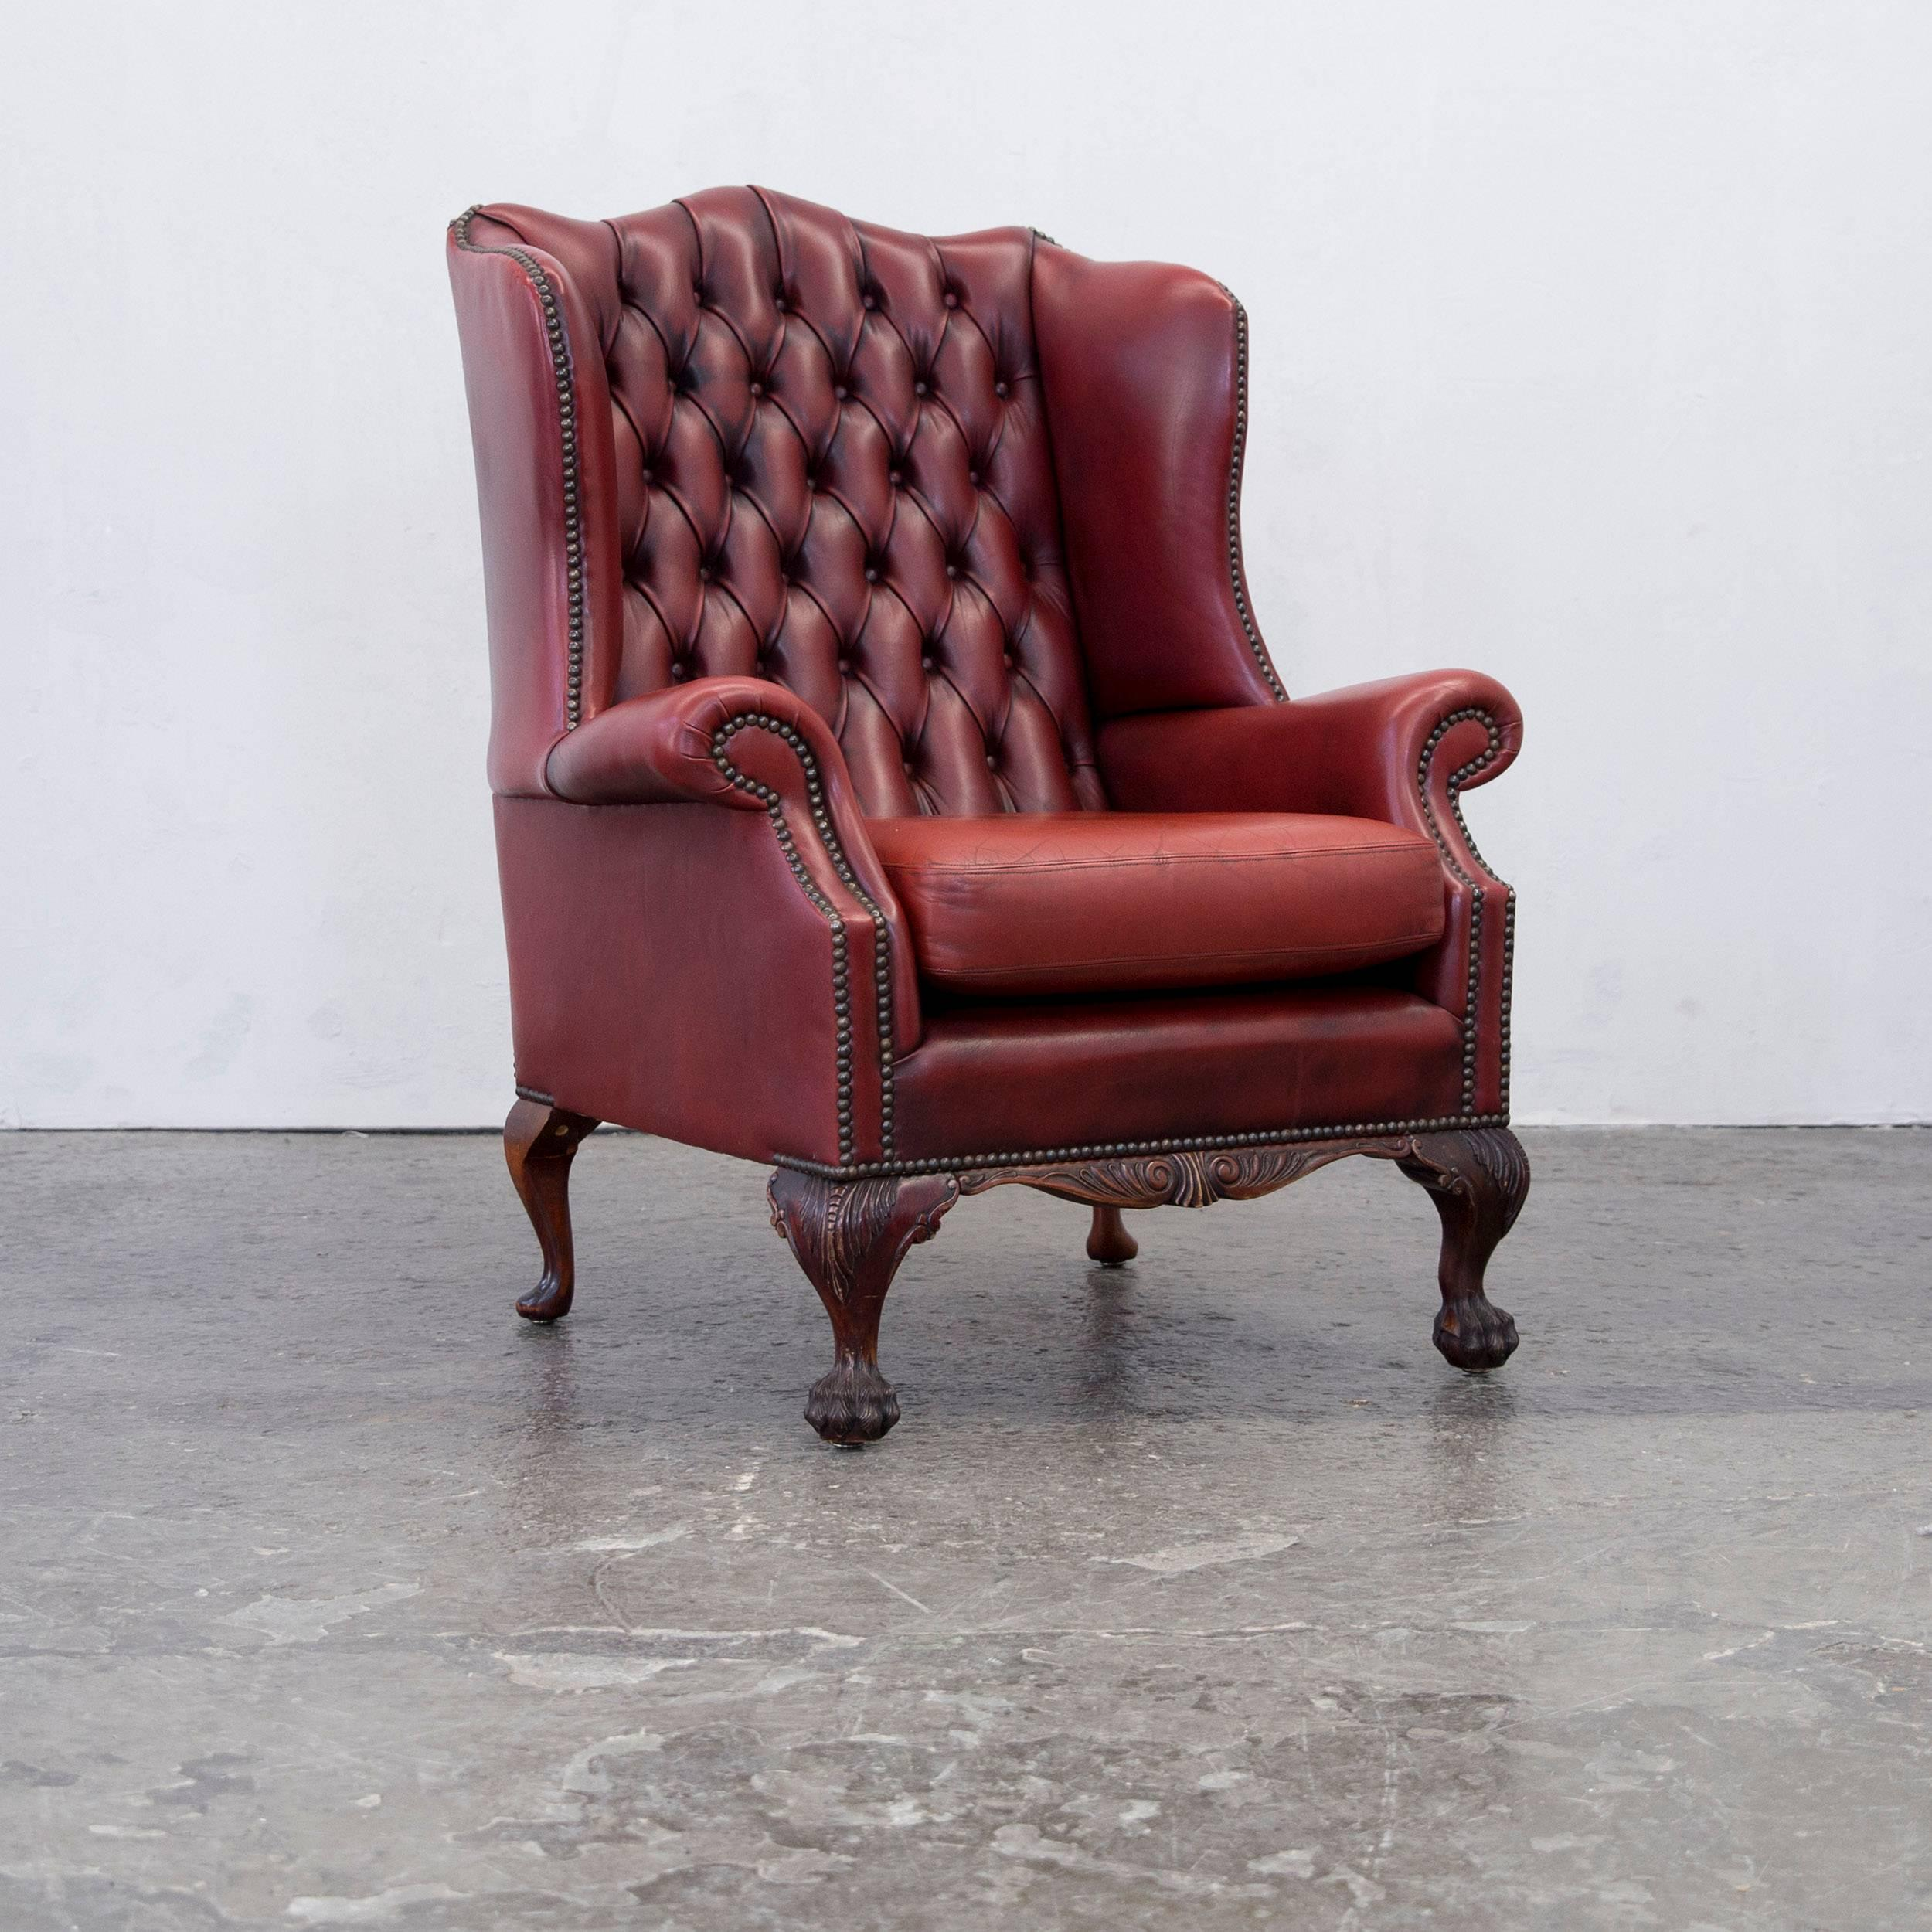 Chesterfield Wingback Chair Set Of Four In Stunning Oxblood Red Full  Leather 2